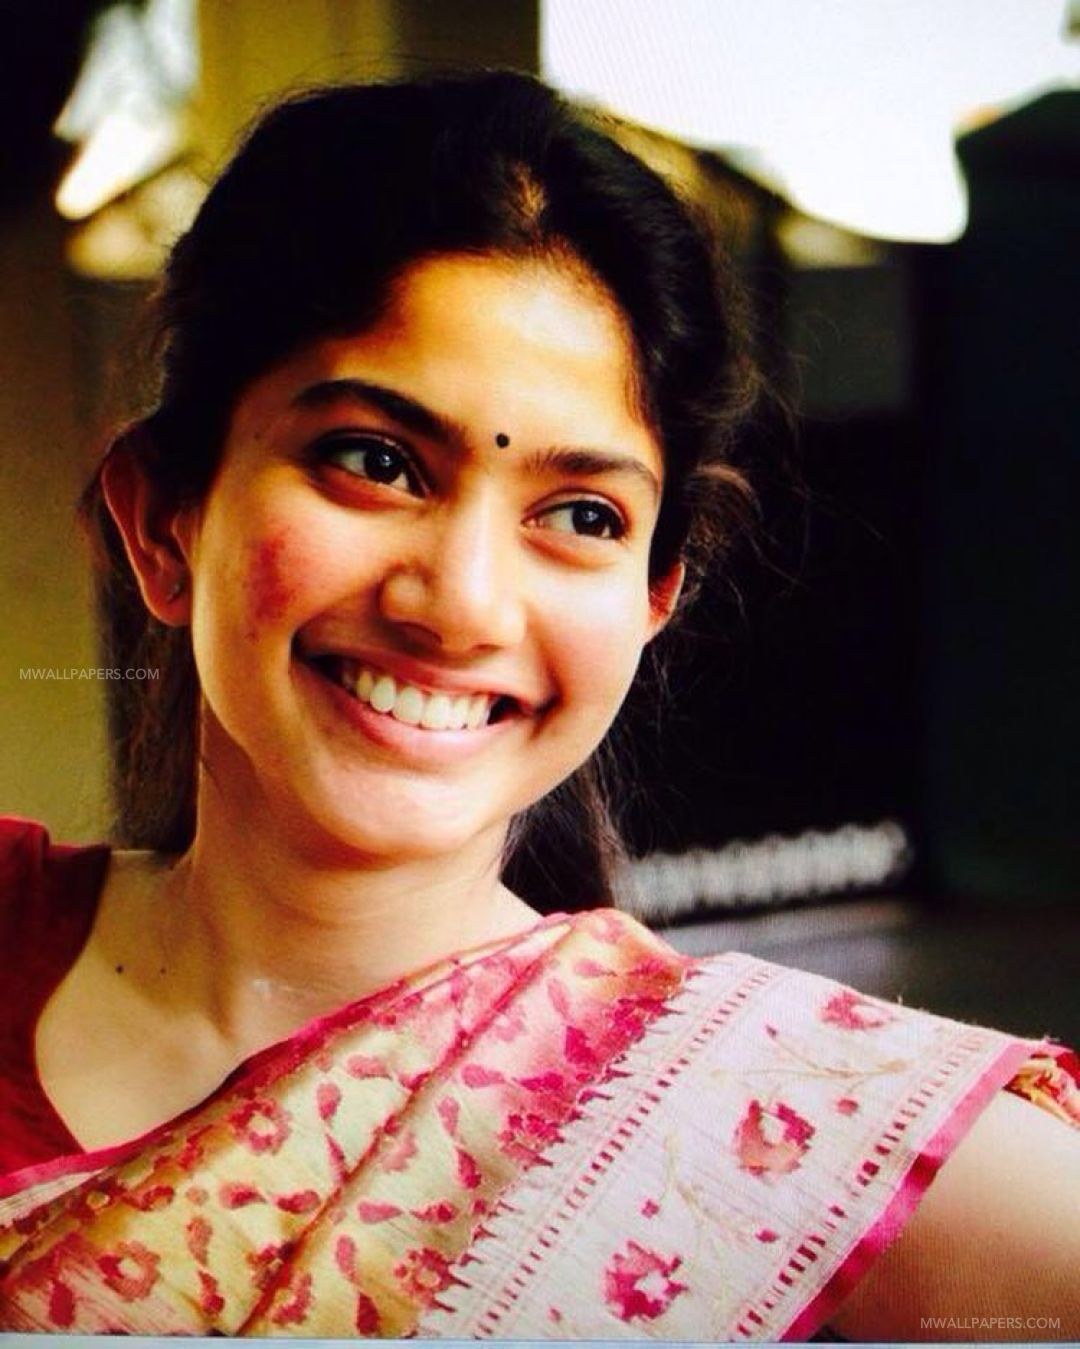 Sai Pallavi HD Wallpapers (Desktop Background / Android / iPhone) (1080p, 4k) (41661) - Sai Pallavi